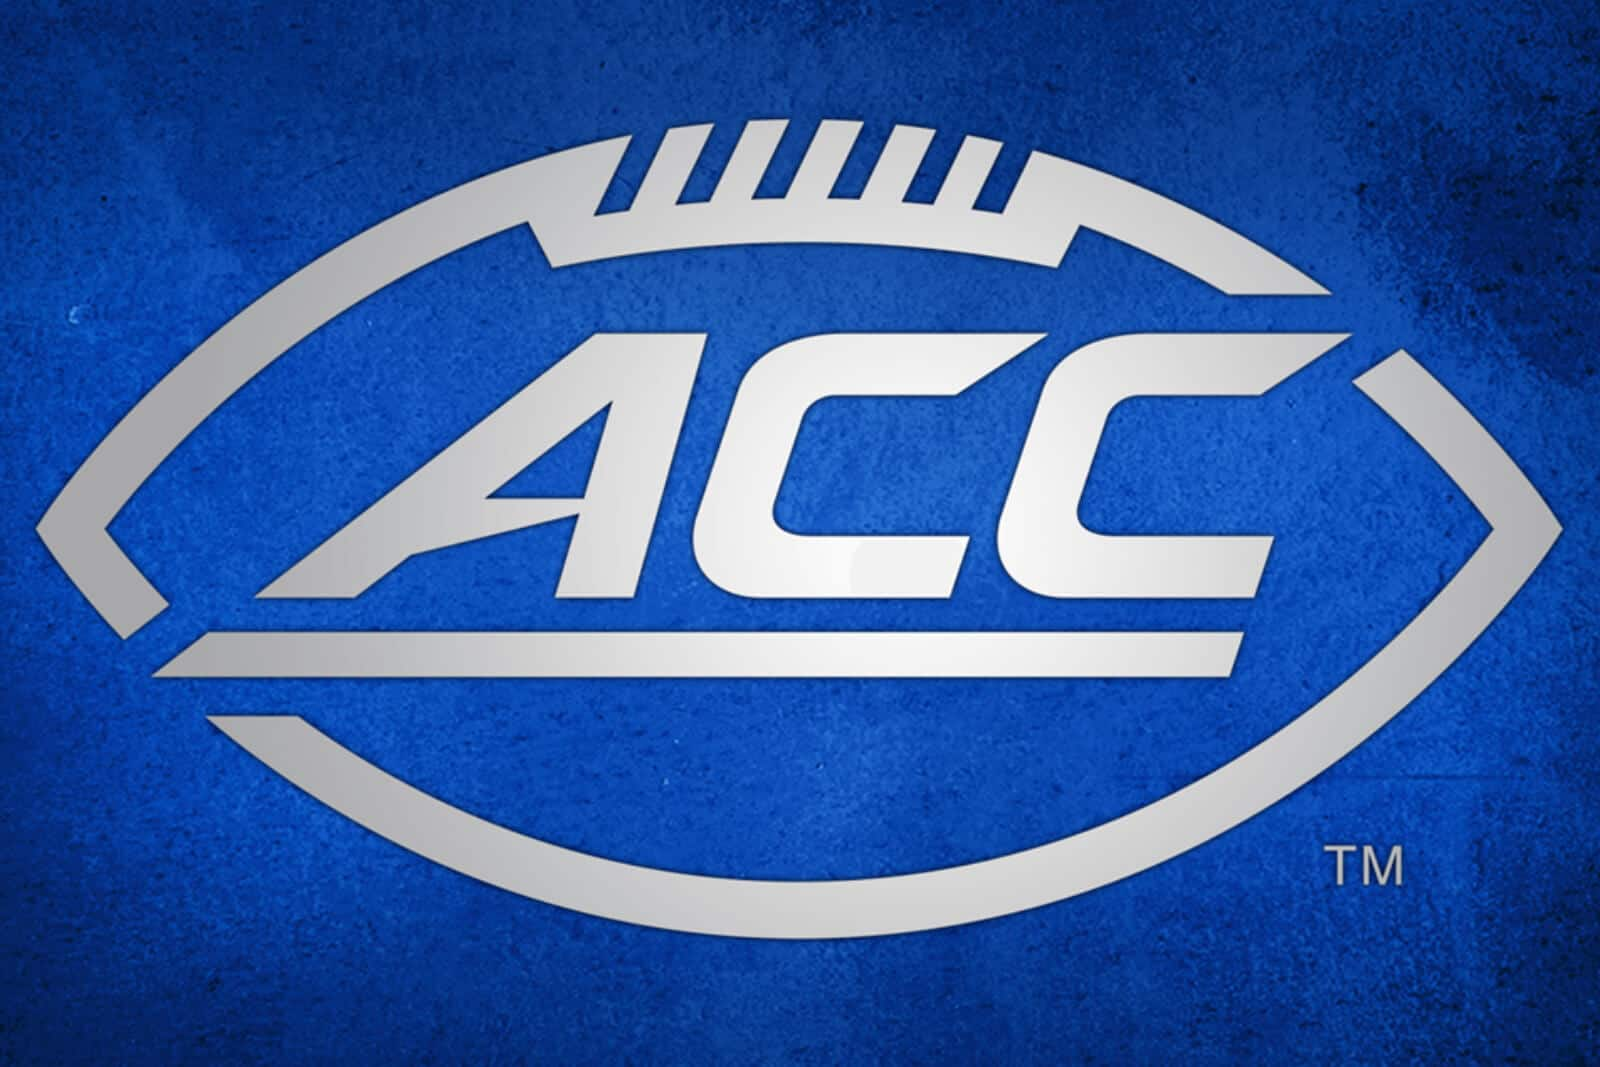 Cable Companies In My Area >> Chansky's Notebook: ACC Network Update - Chapelboro.com